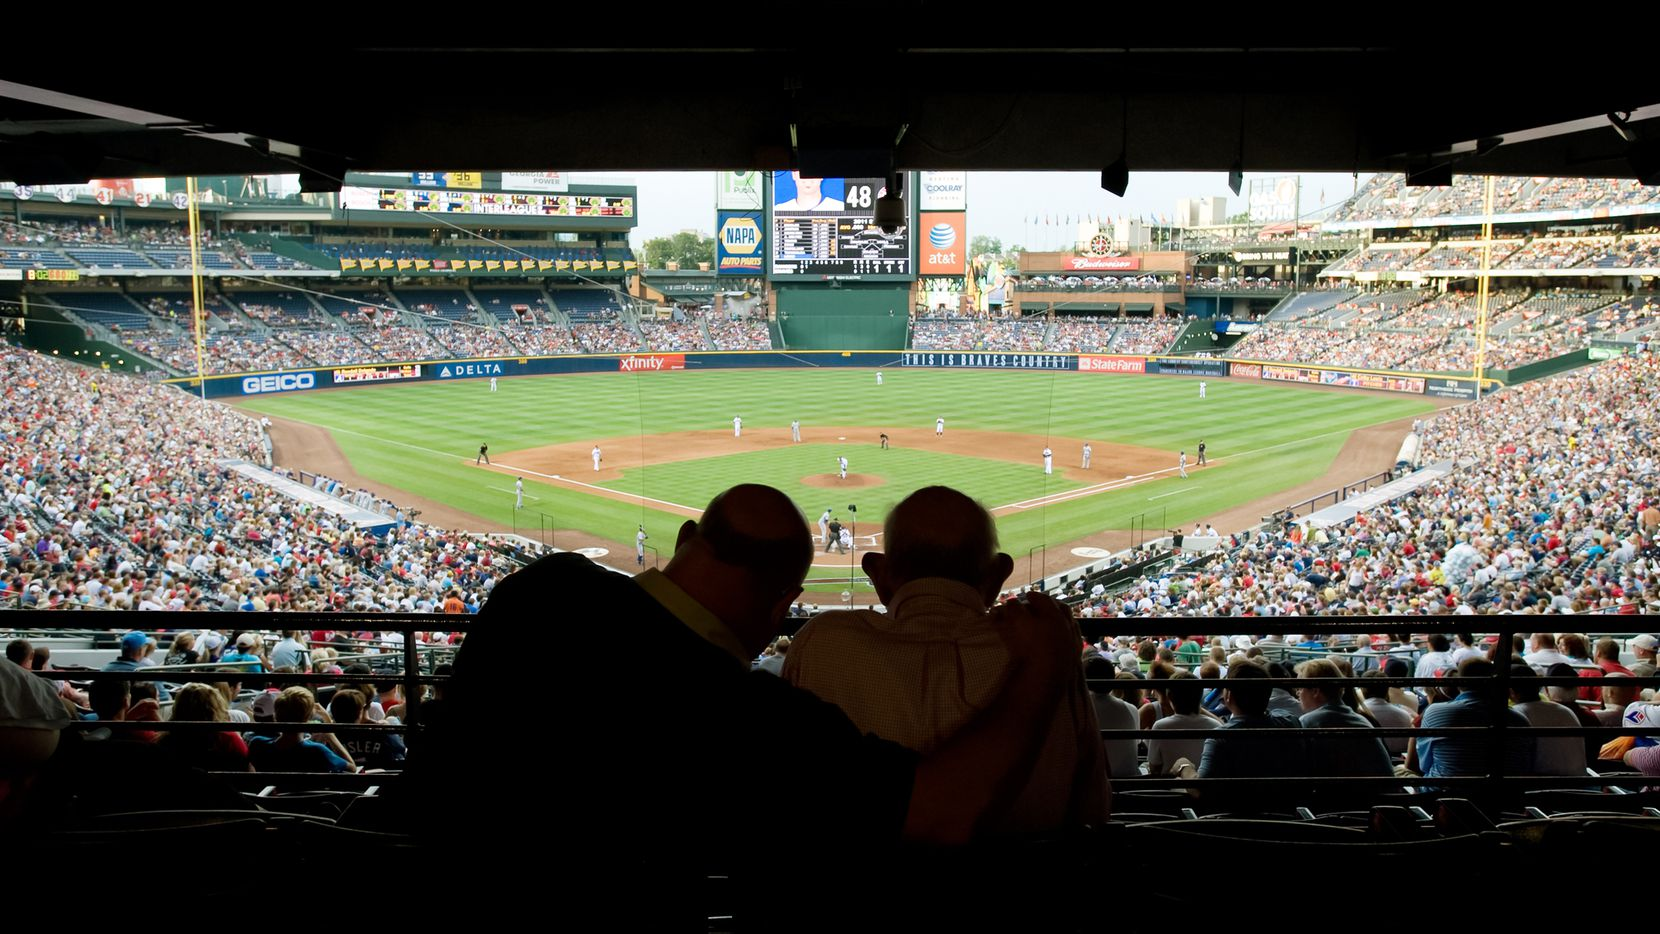 Dallas Morning News Texas Rangers beat writer Evan Grant, left, took his father, Sheldon Grant, 87-years-old, to a Atlanta Braves game Friday (6/17/11) in Atlanta as the Braves played the Texas Rangers. (Joey Ivansco/Special Contributor)